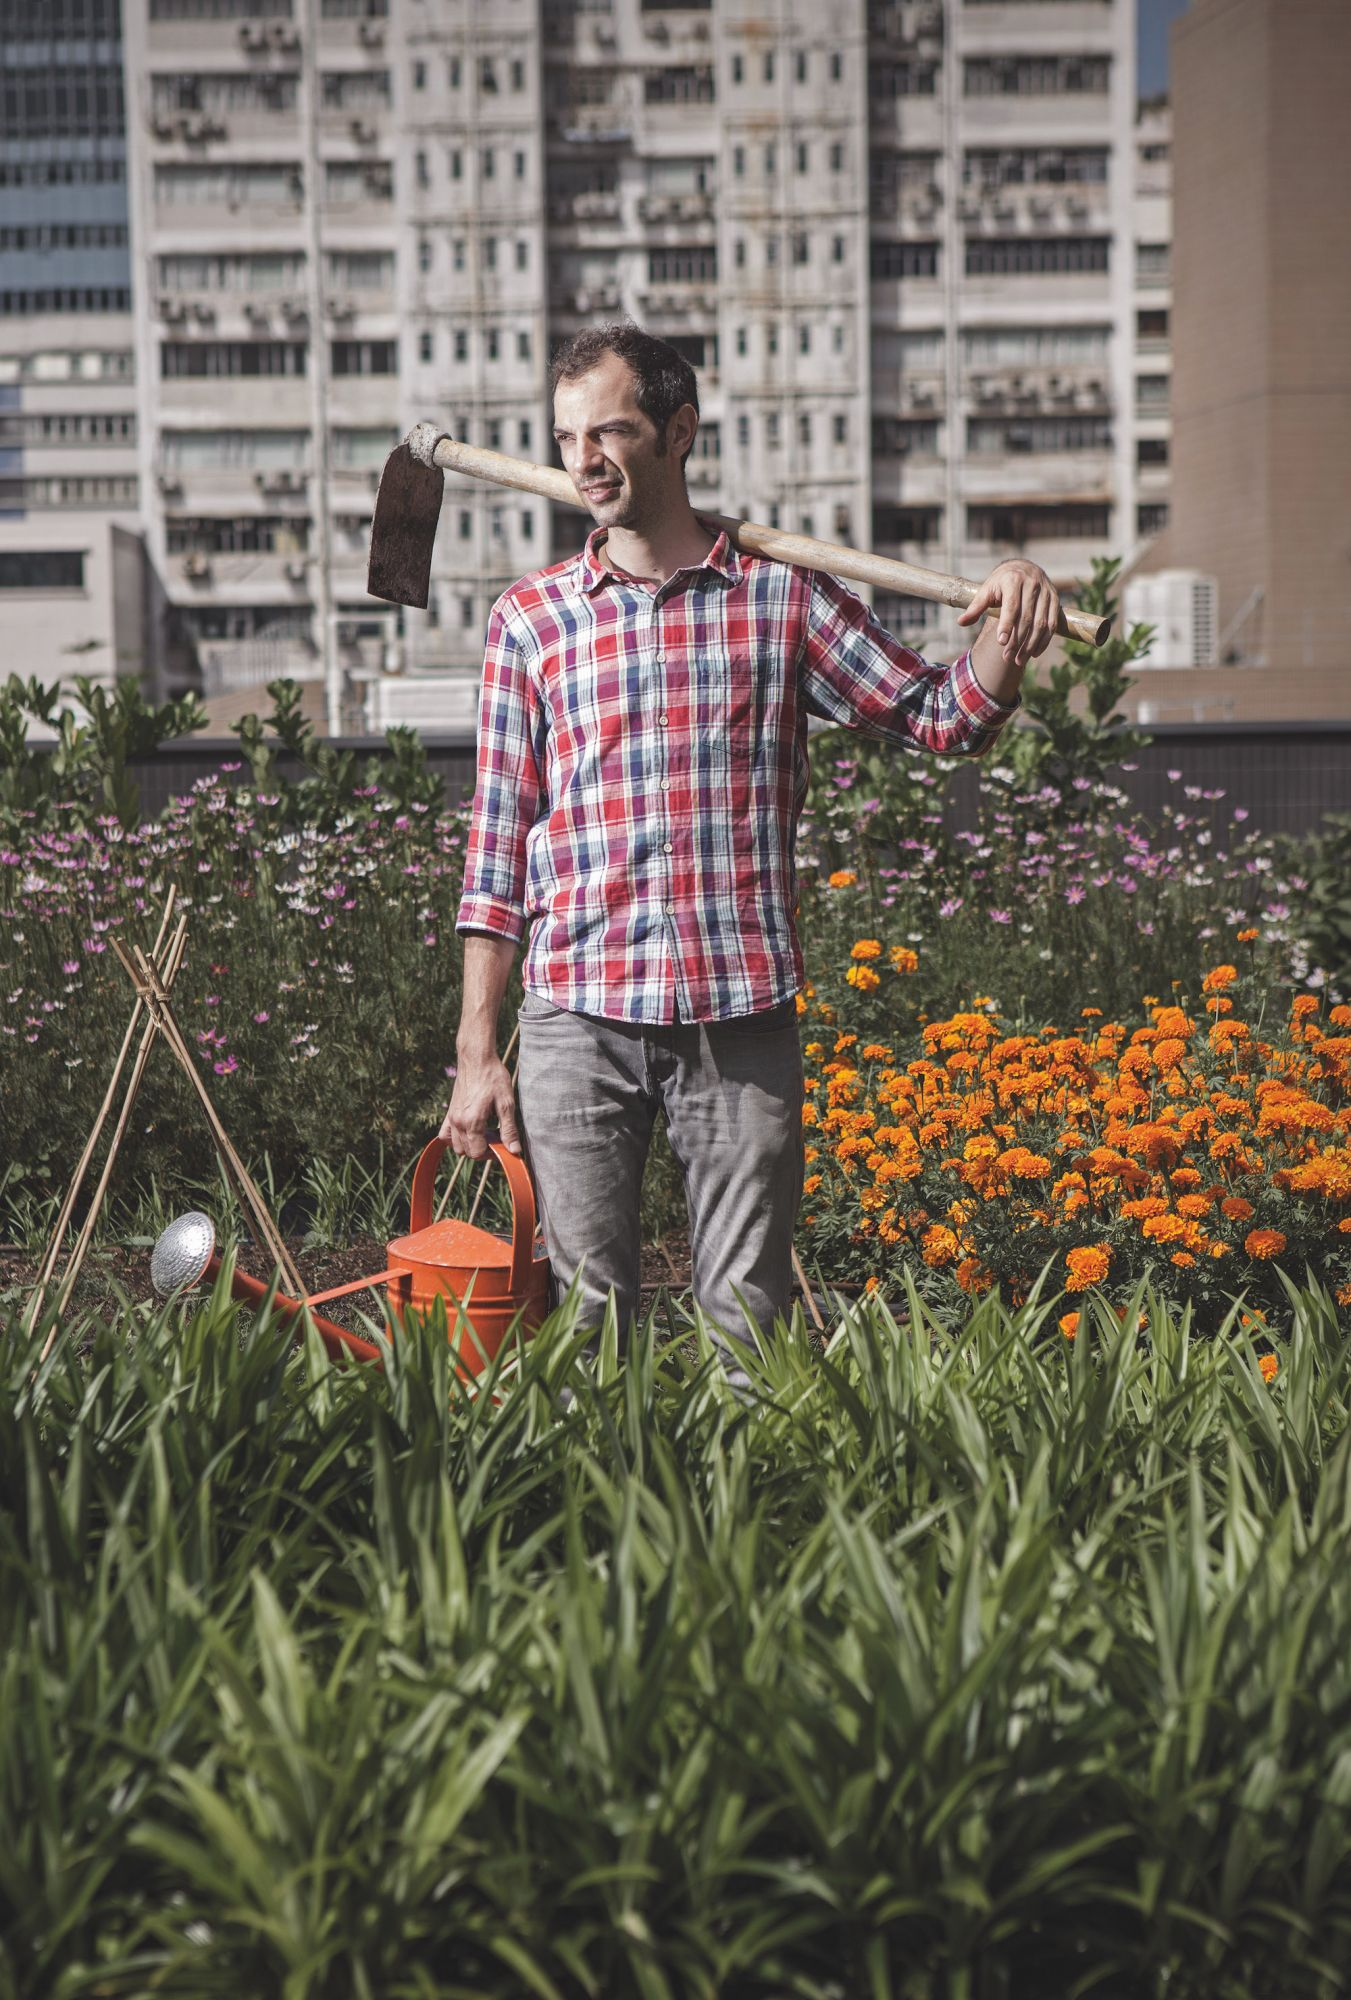 Pol Fàbrega: How To Start Your Own Vegetable Garden